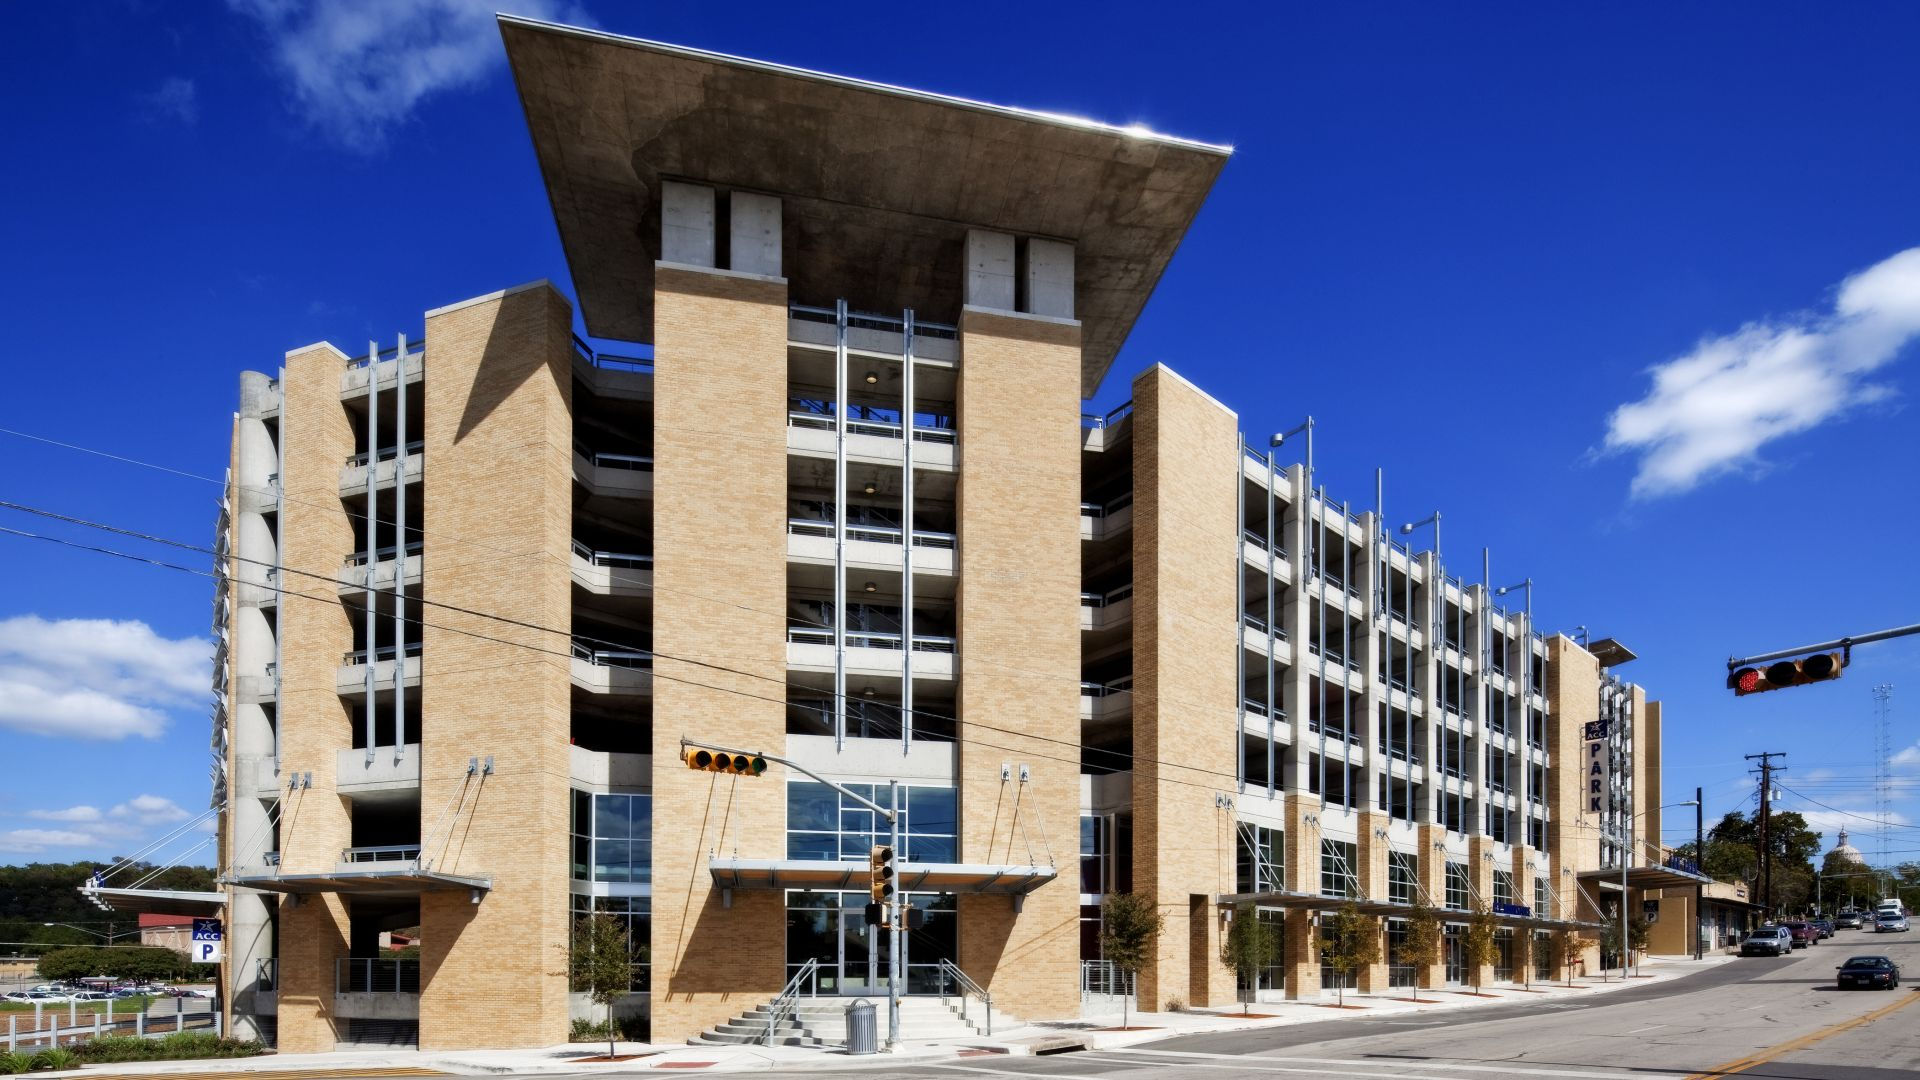 Rio Grande Campus Parking Garage, Austin Community College   Mixed-use | Parking | Bookstore